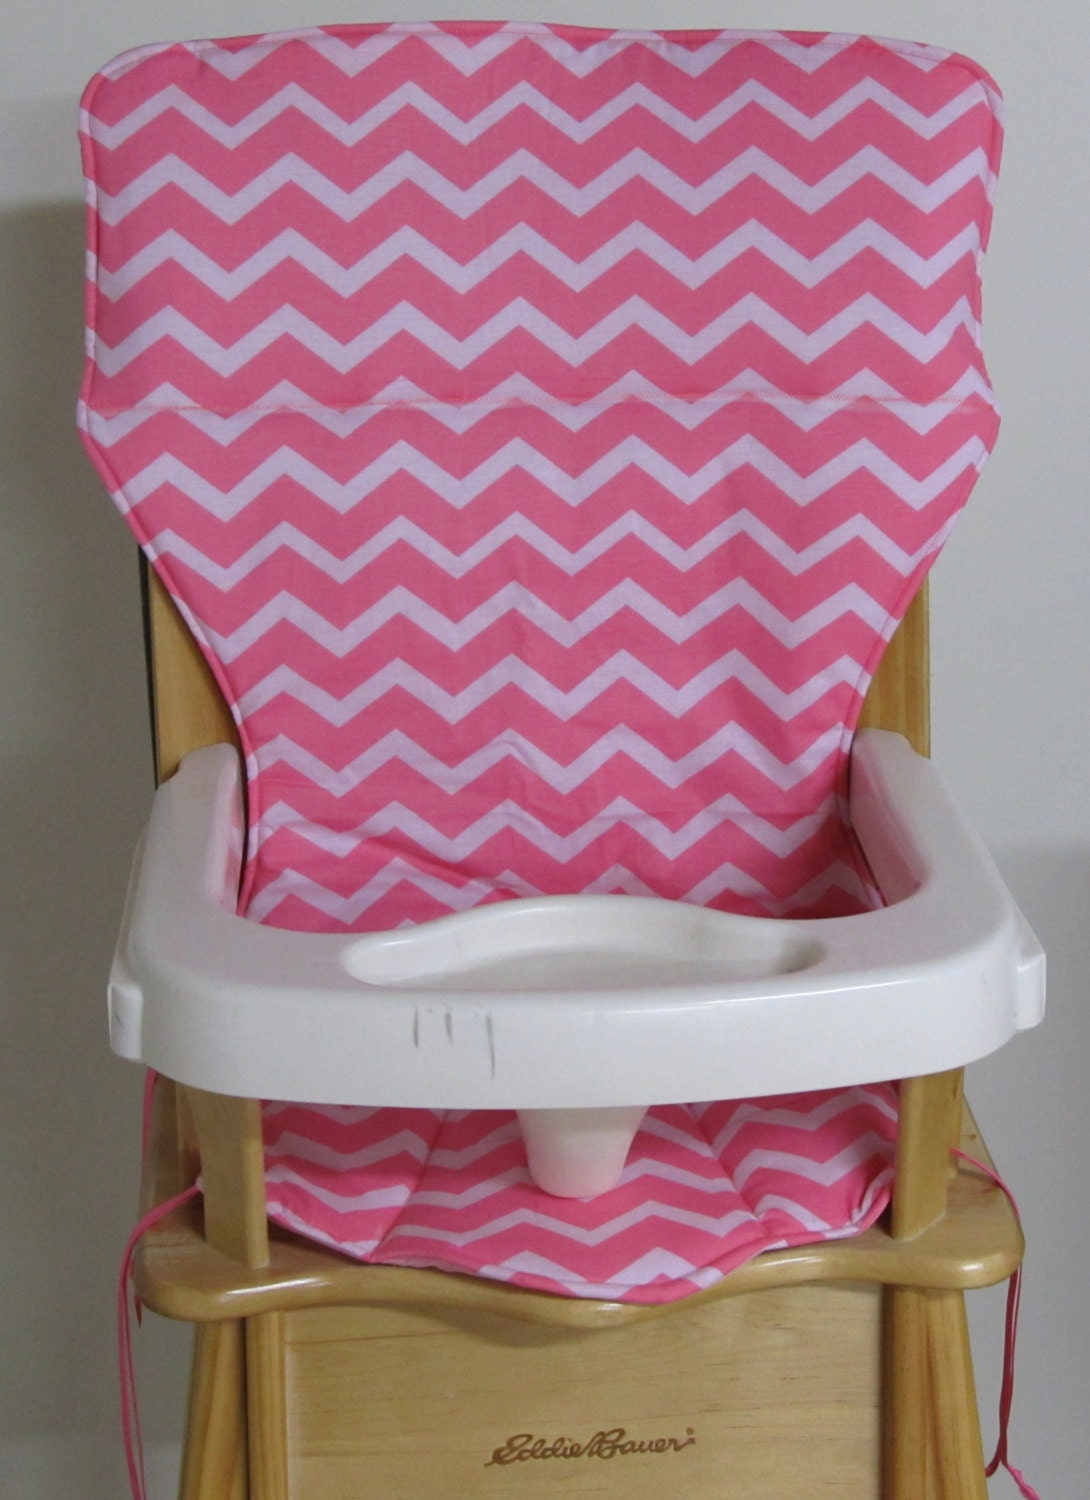 eddie bauer high chair pad replacement cover zigzag coral. Black Bedroom Furniture Sets. Home Design Ideas